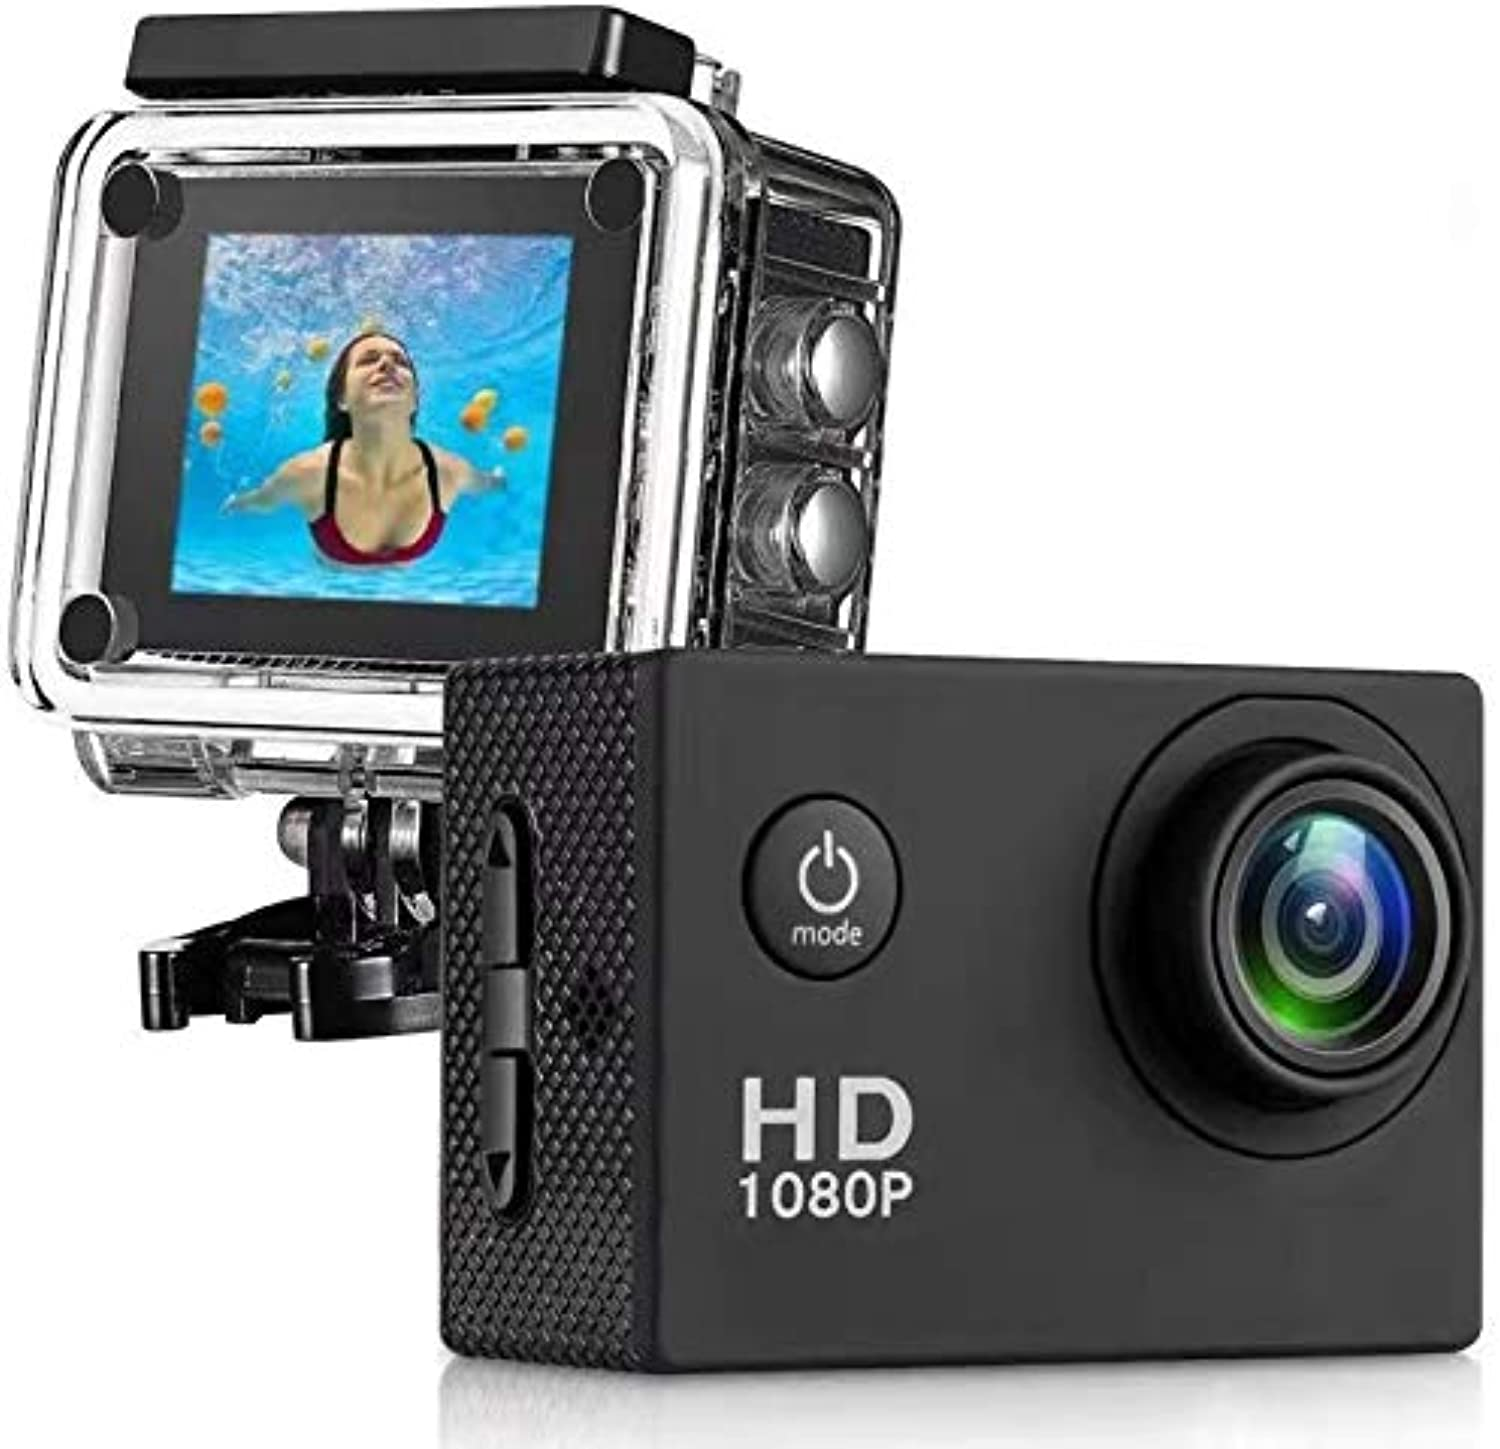 170° Wide Angle Lens Full HD 30m Waterproof 2 Inch LCD Screen Action Camera with 2 Rechargeable Batteries and All Necessary Accessories Kit